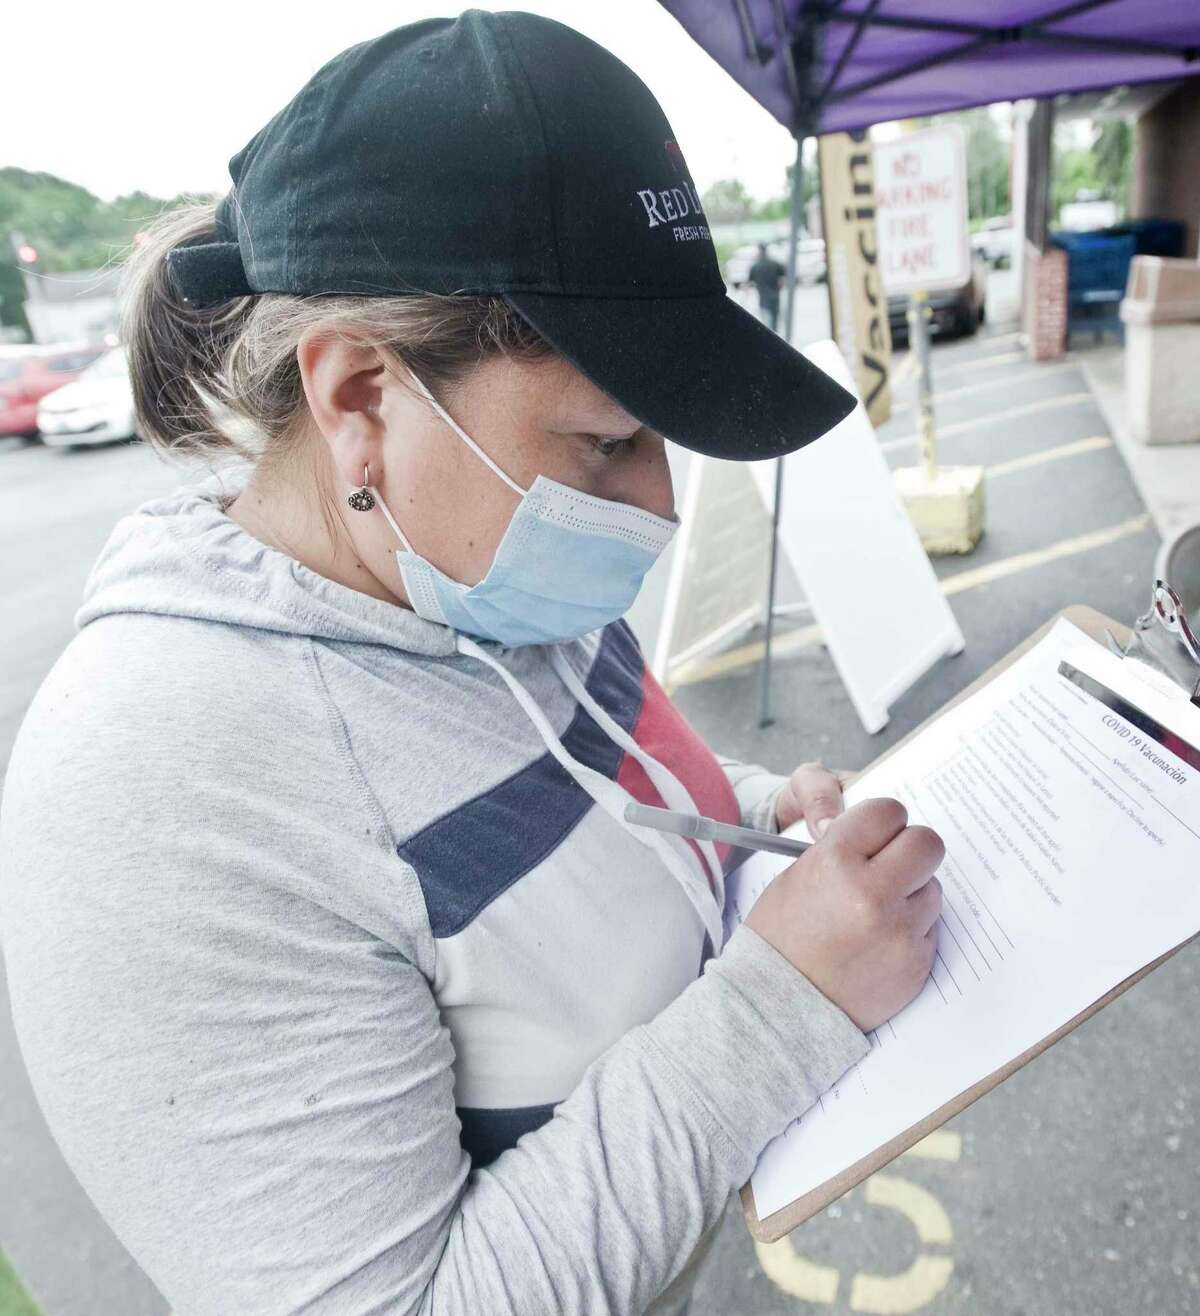 Mirian Aucay, of Danbury, fills out a form prior to receiving a COVID-19 vaccine at CTown Supermarket in Danbury. Tuesday, June 22, 2021